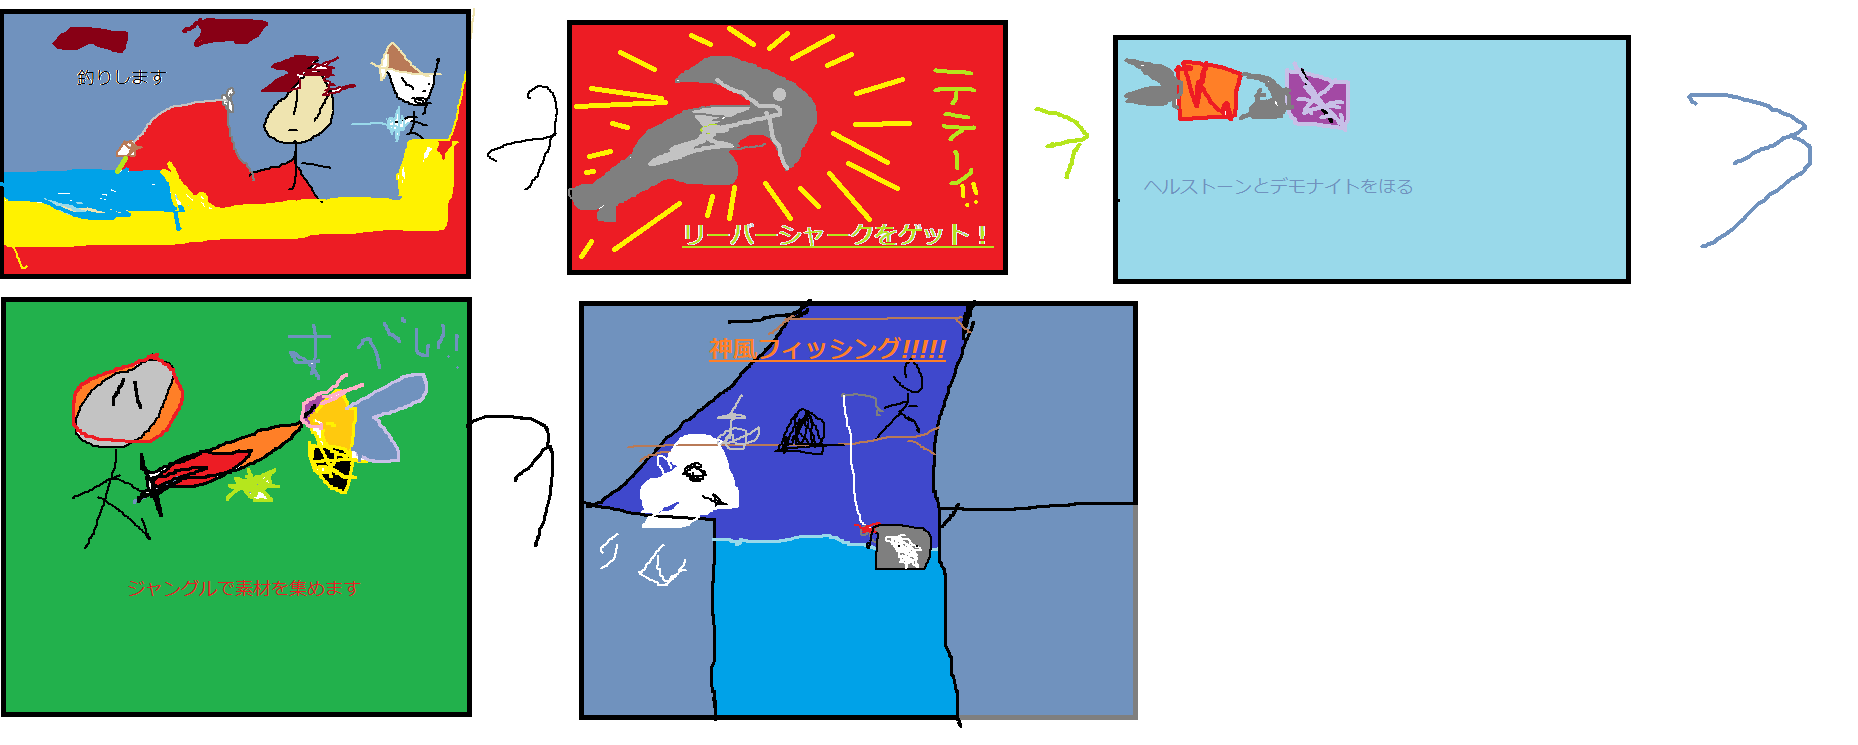 how tow pre-boss make night edge .png